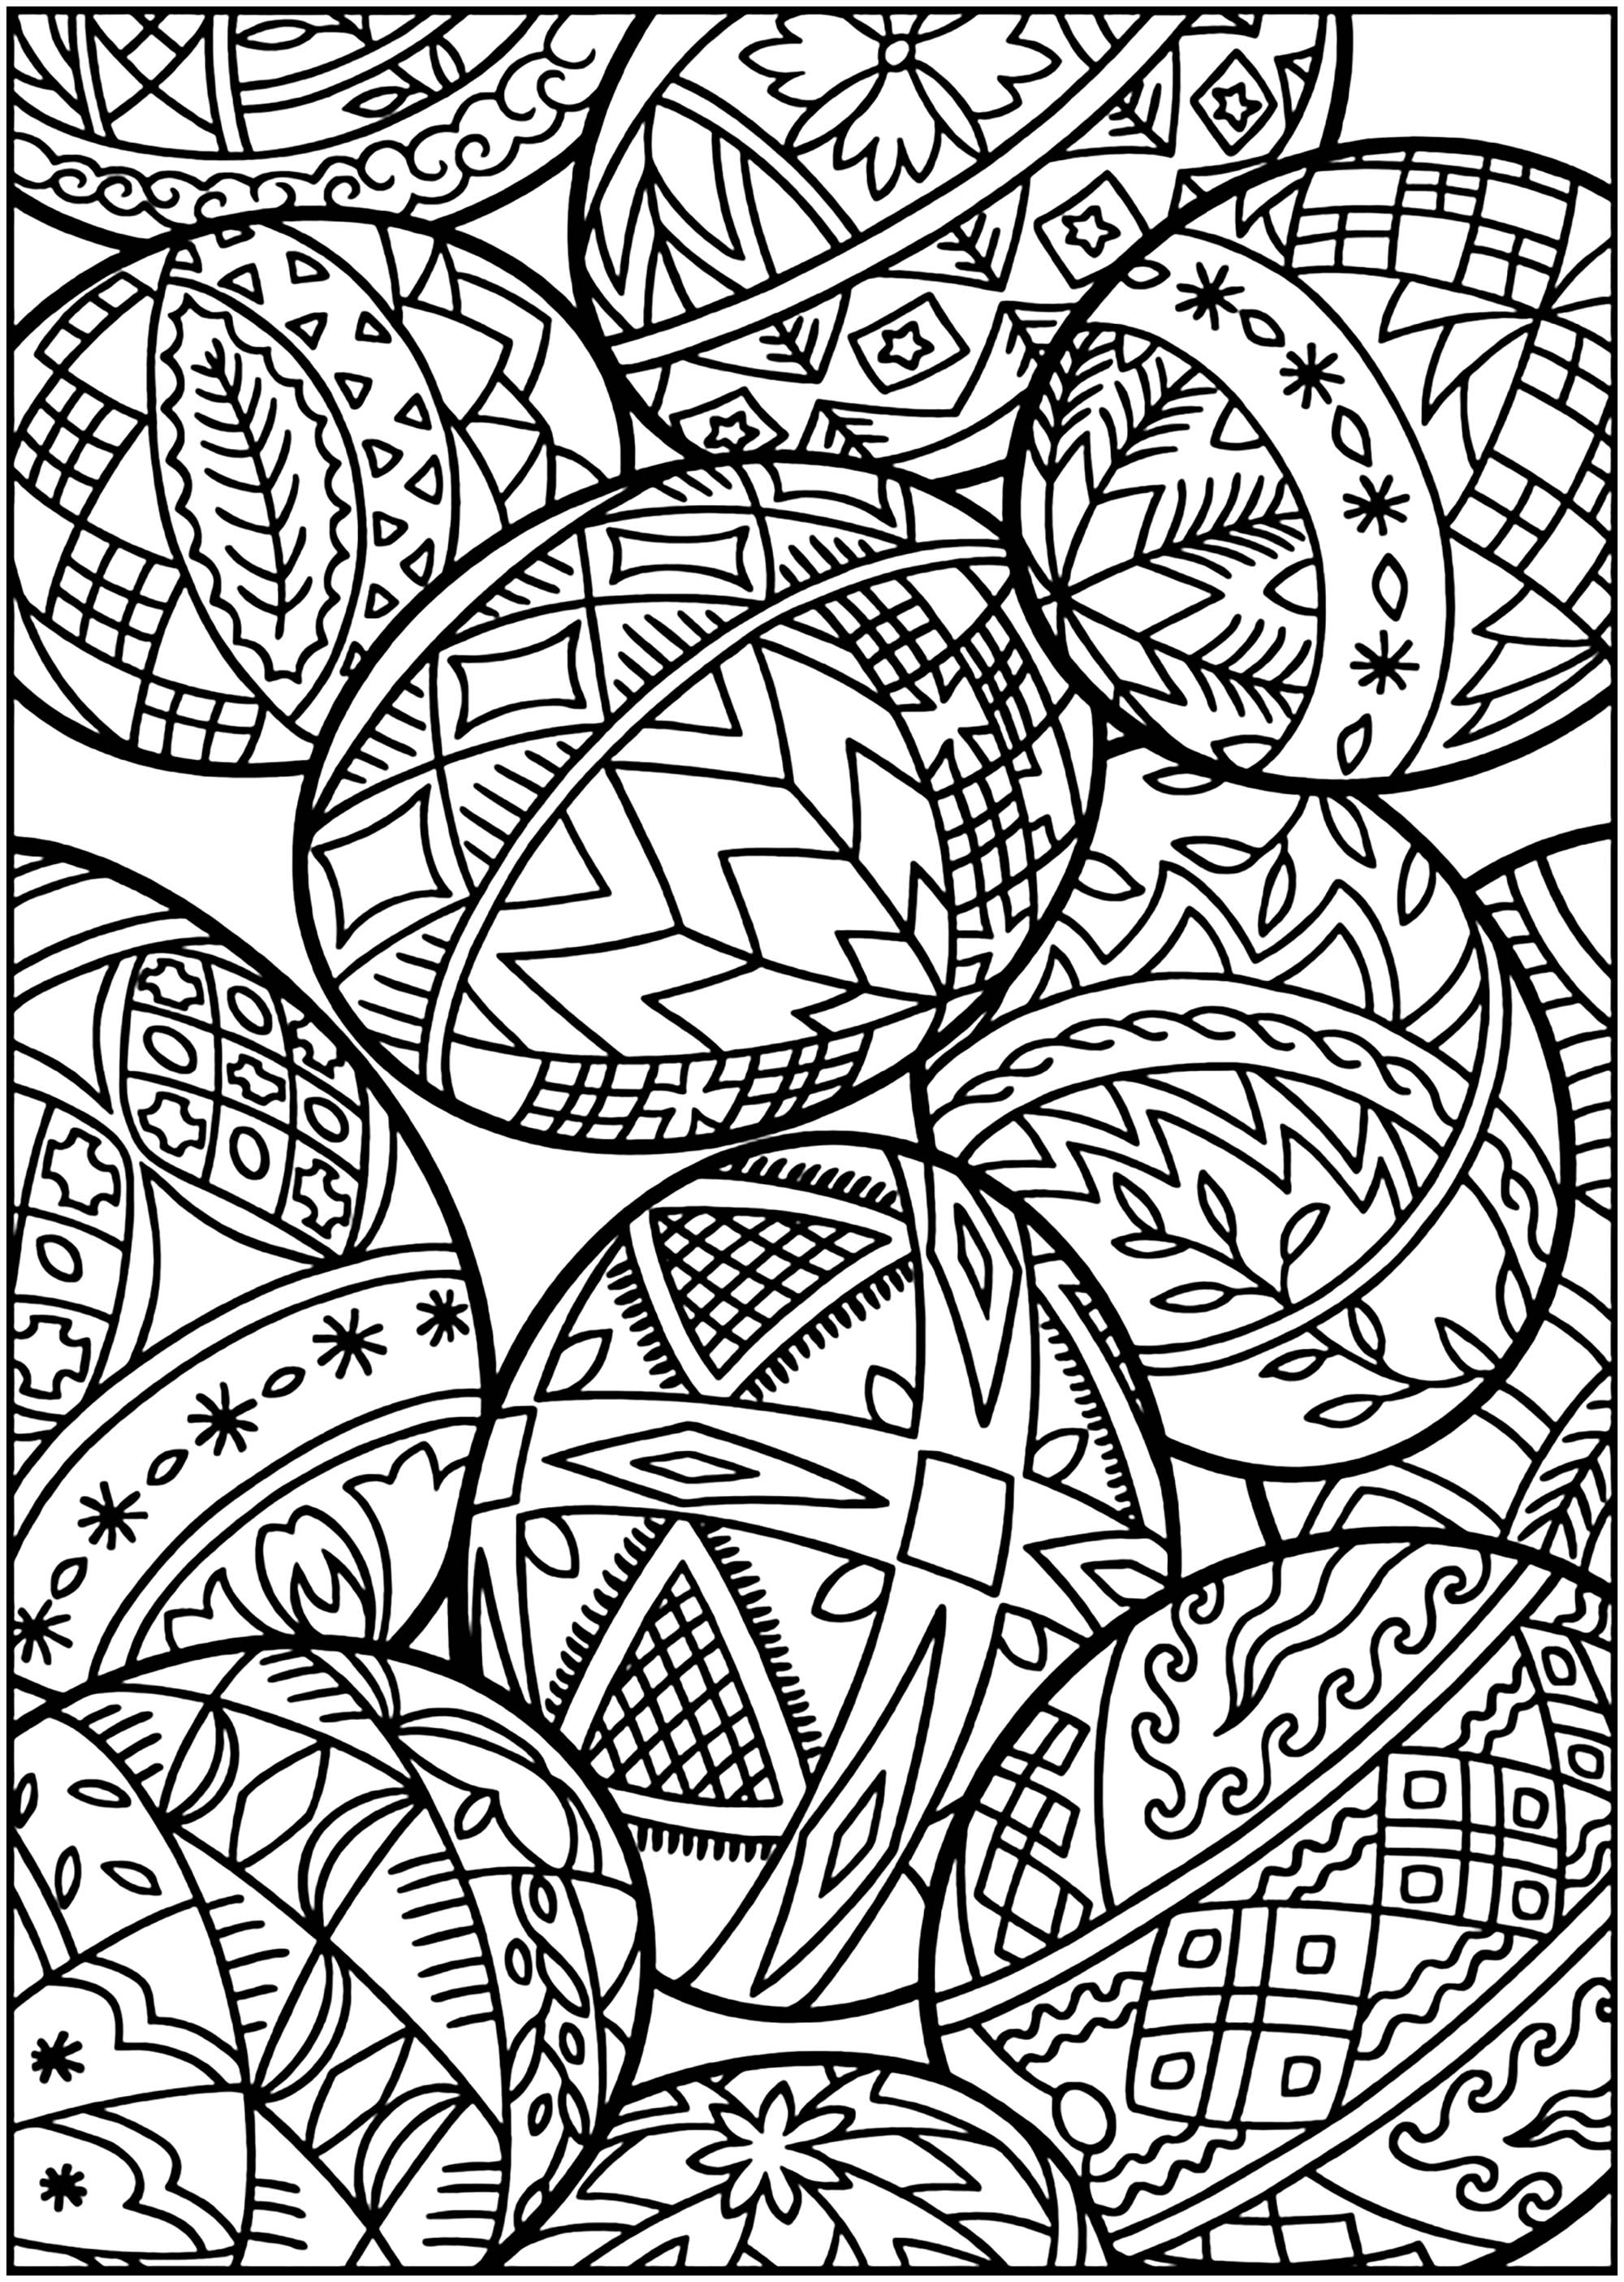 Easter eggs with patterns, Artist : Dover Publications   Source : doverpublications